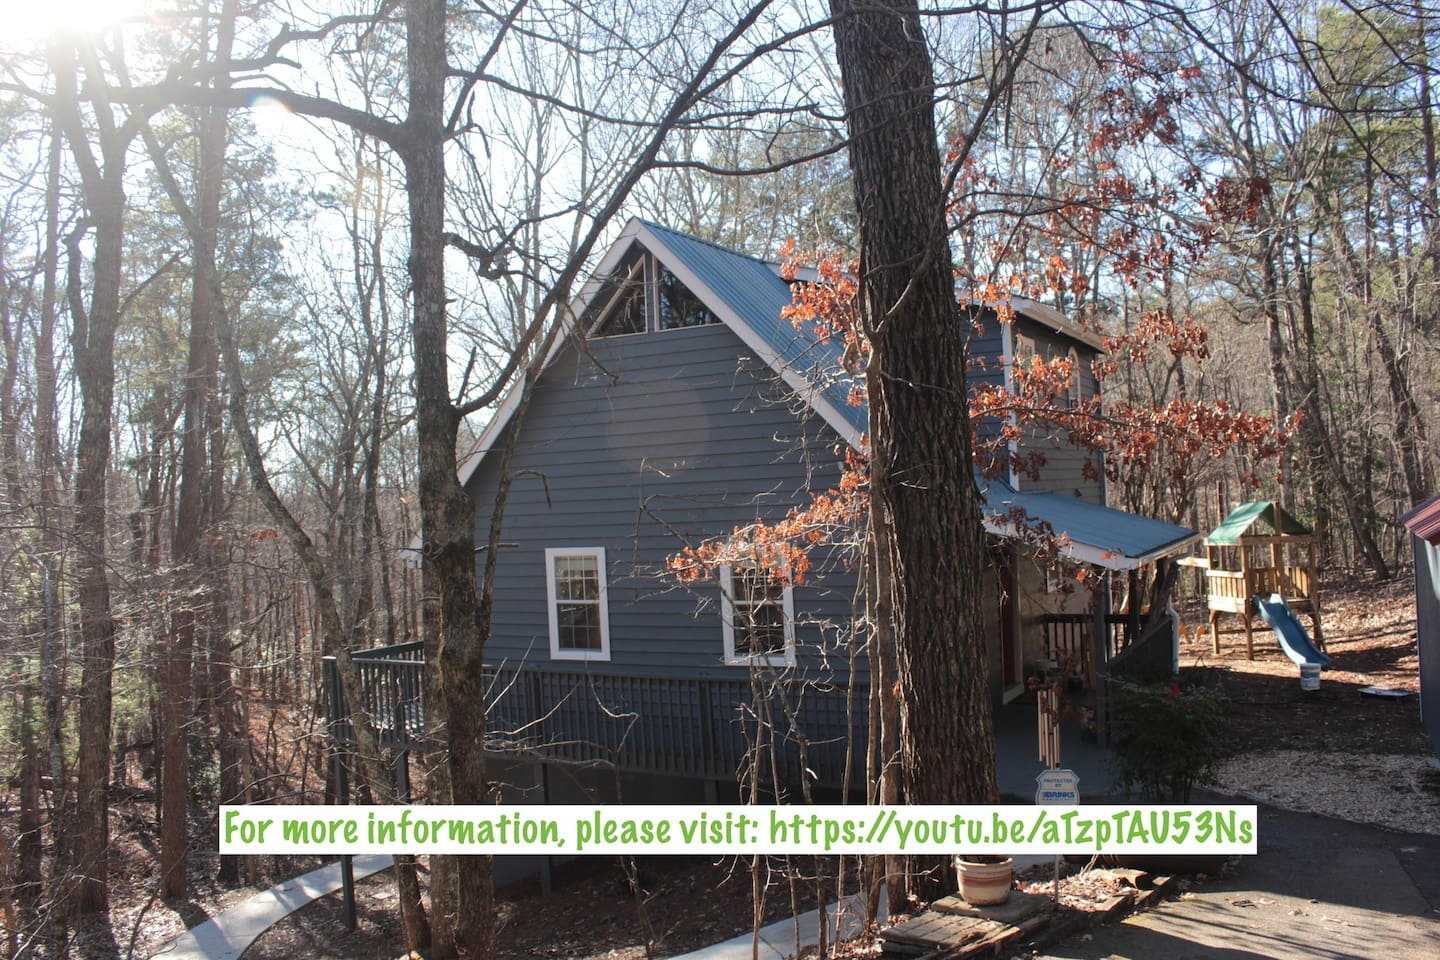 Welcome to the Grindle Bridge Cabin - A perfect place nestled in the woods, yet close to amazing places to visit:  Dahlonega, Cleveland, and Helen! For more info, please copy and paste the link on this picture!